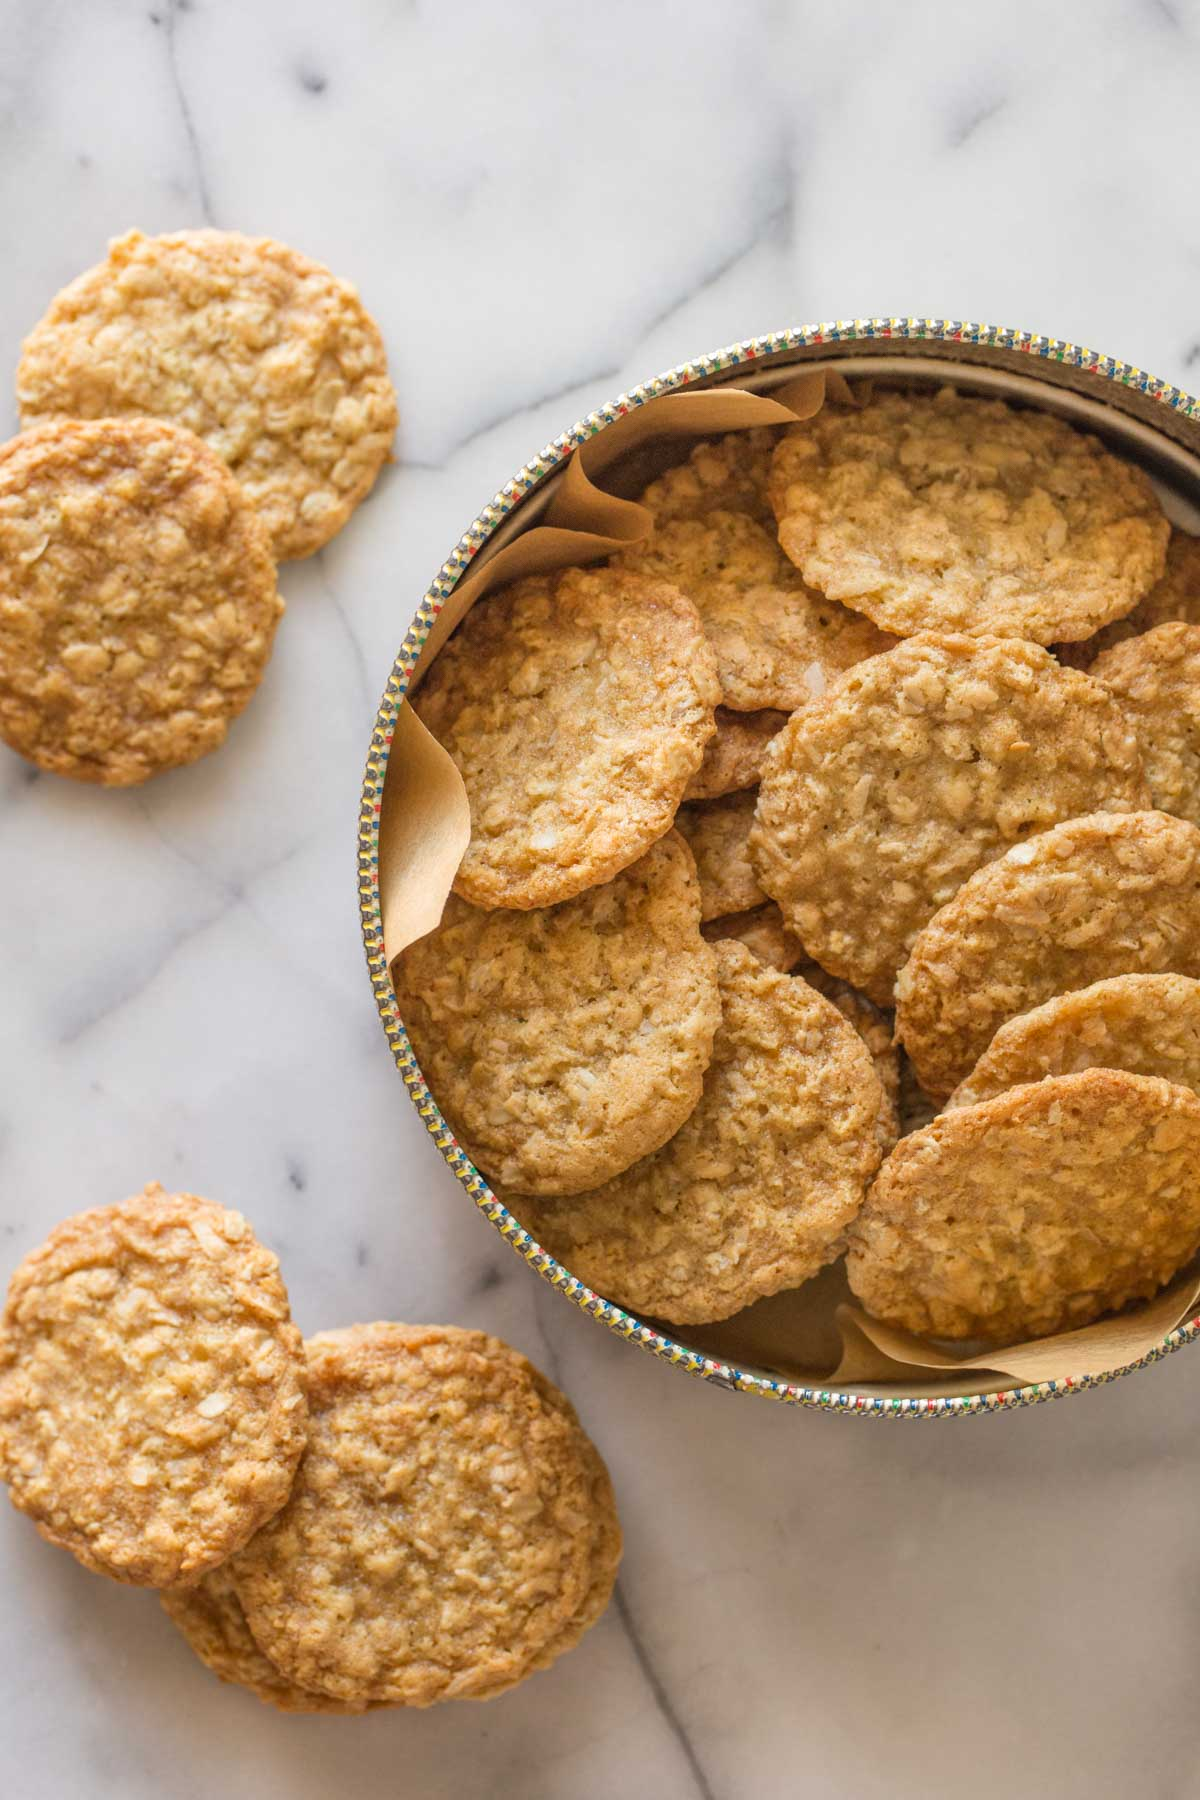 Overhead shot of Buttery Coconut Oatmeal Cookies in a container, with more cookies next to the container on a marble background.